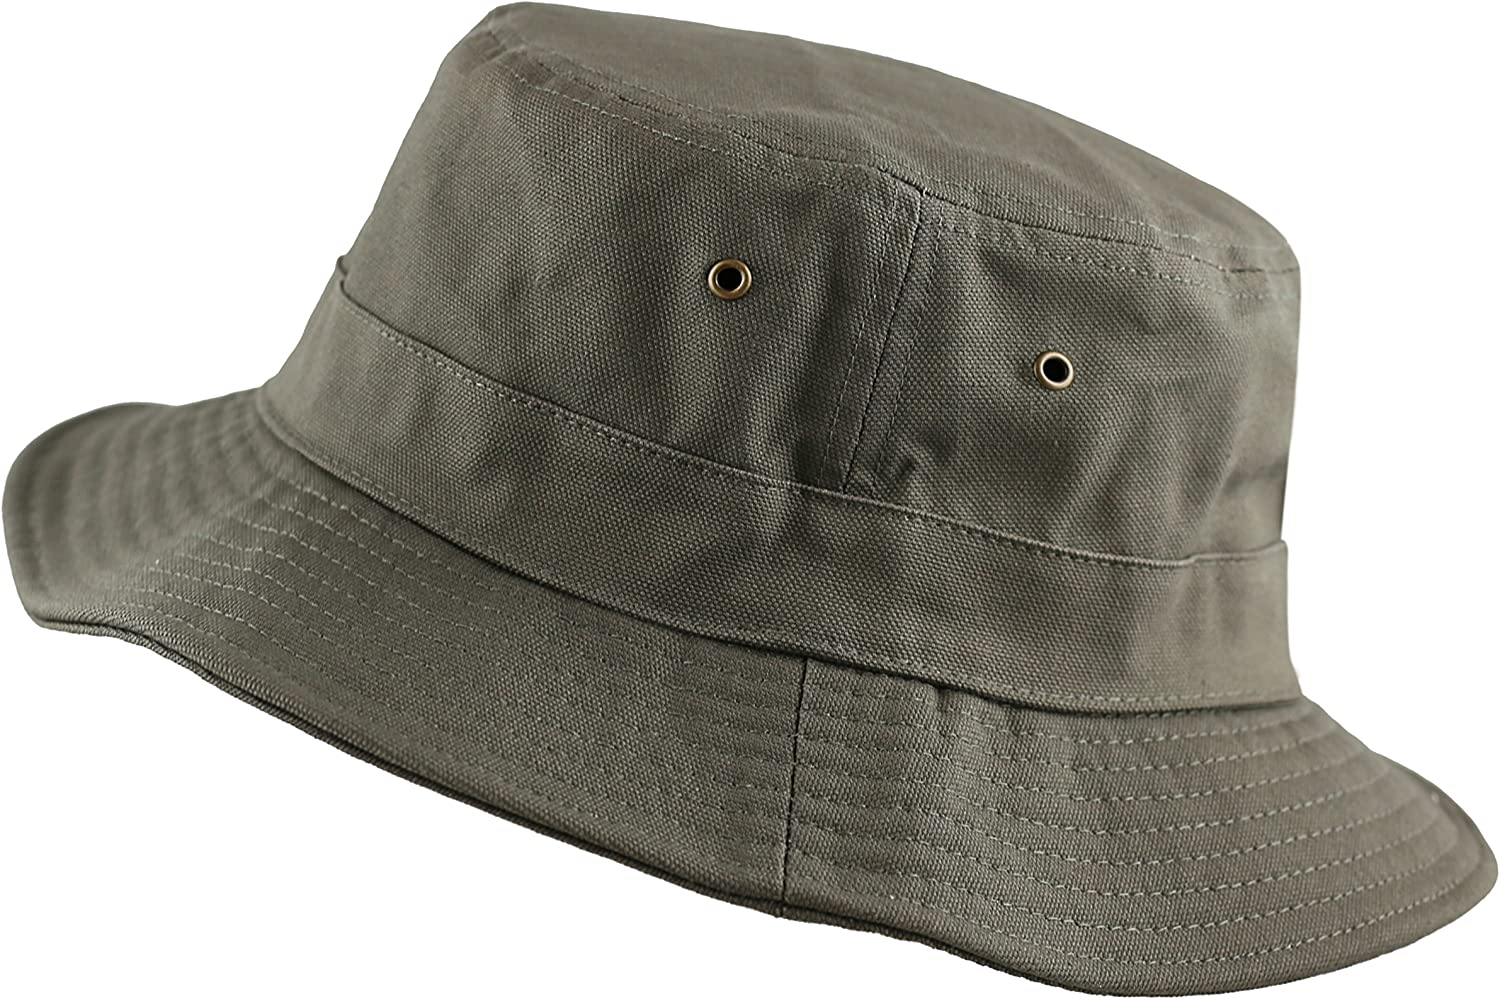 The Hat Depot Cotton Canvas...